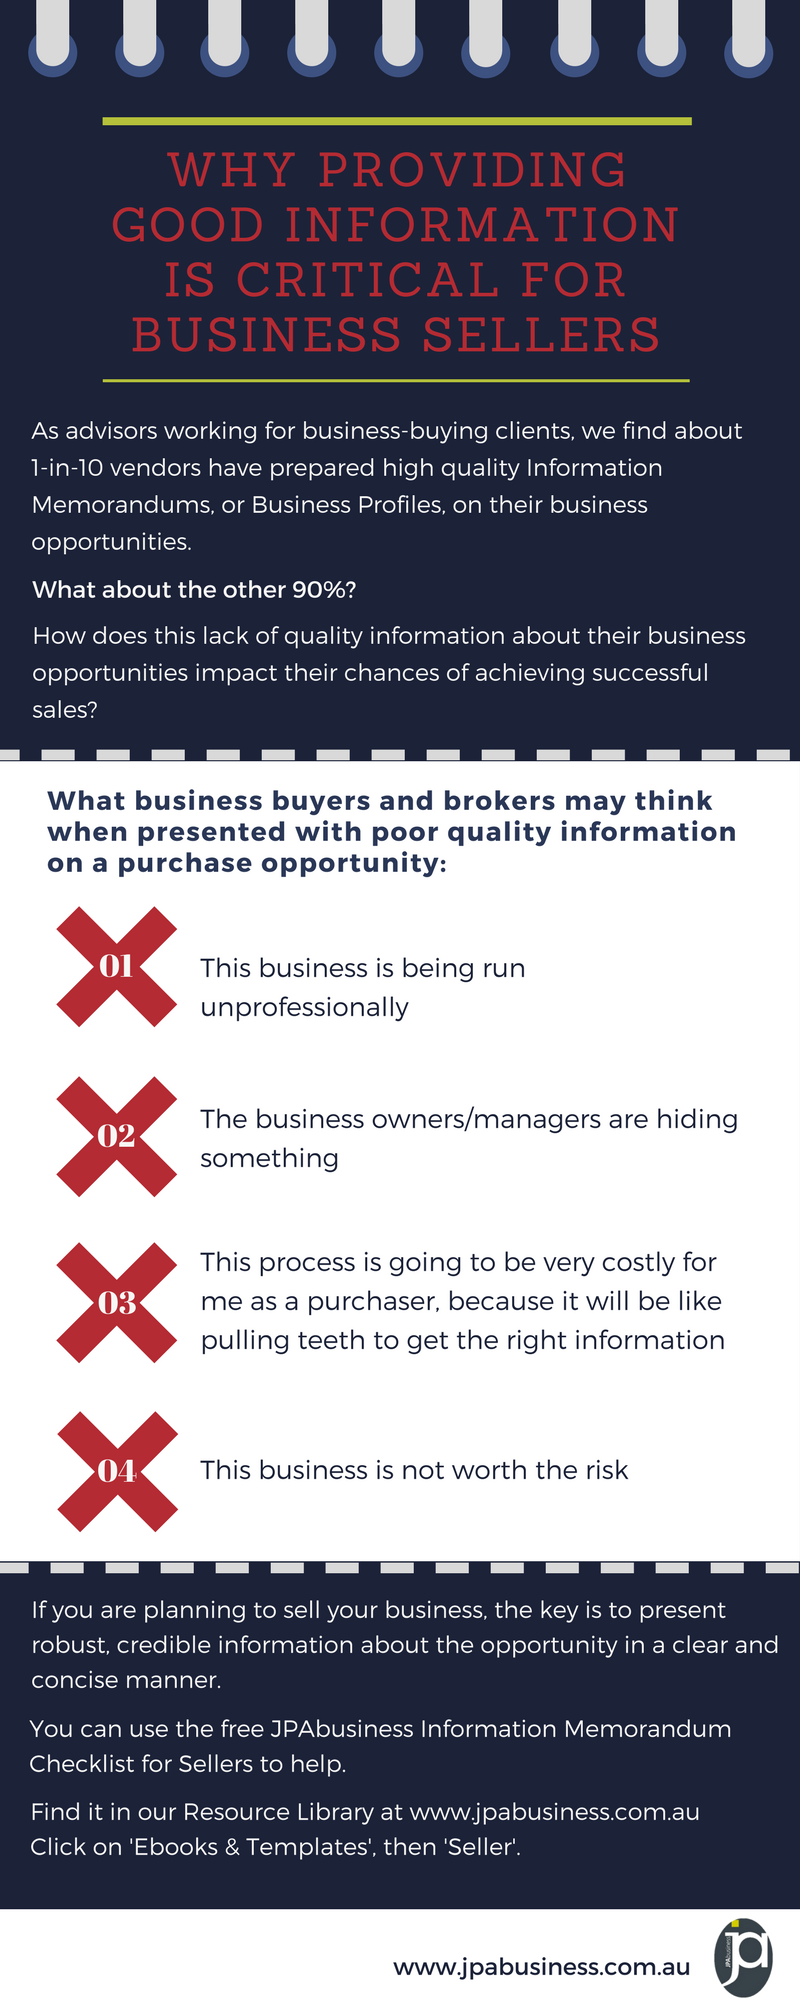 Why providing good information is critical for business sellers